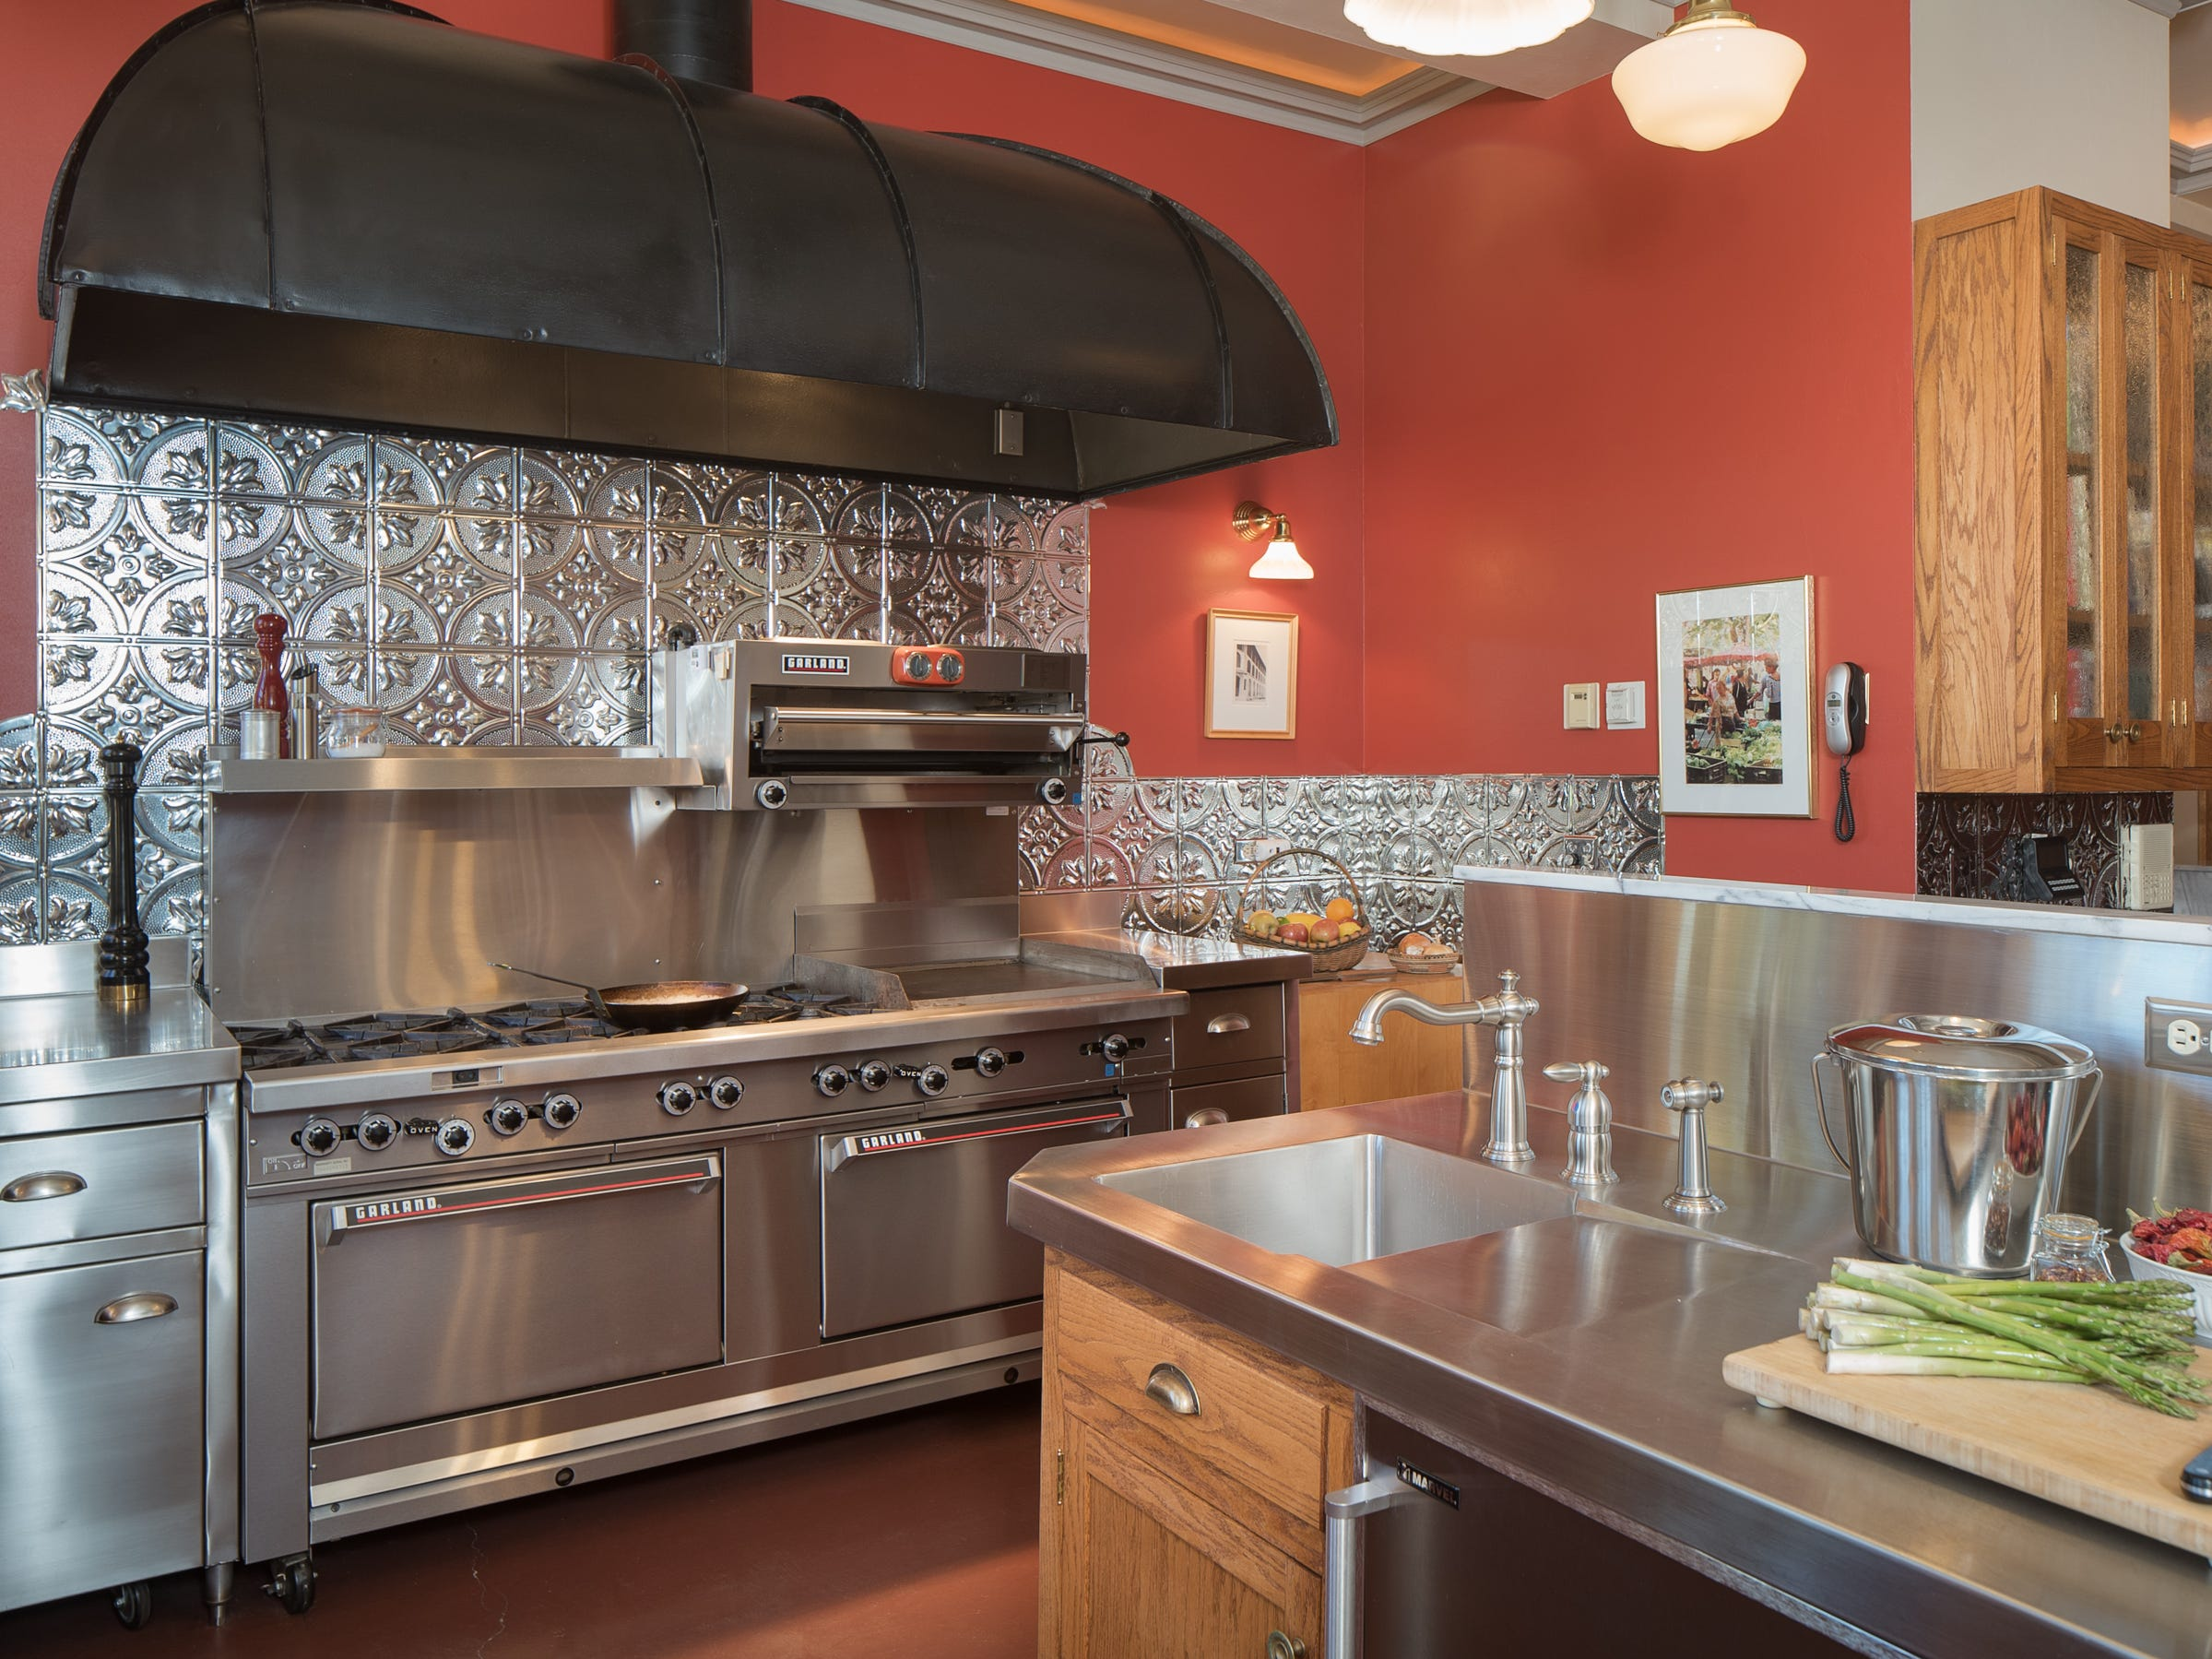 A kitchen island is seen in the 100-year-old former Little Daisy Hotel in Jerome, which was later turned into a single-family home and is now on the market.